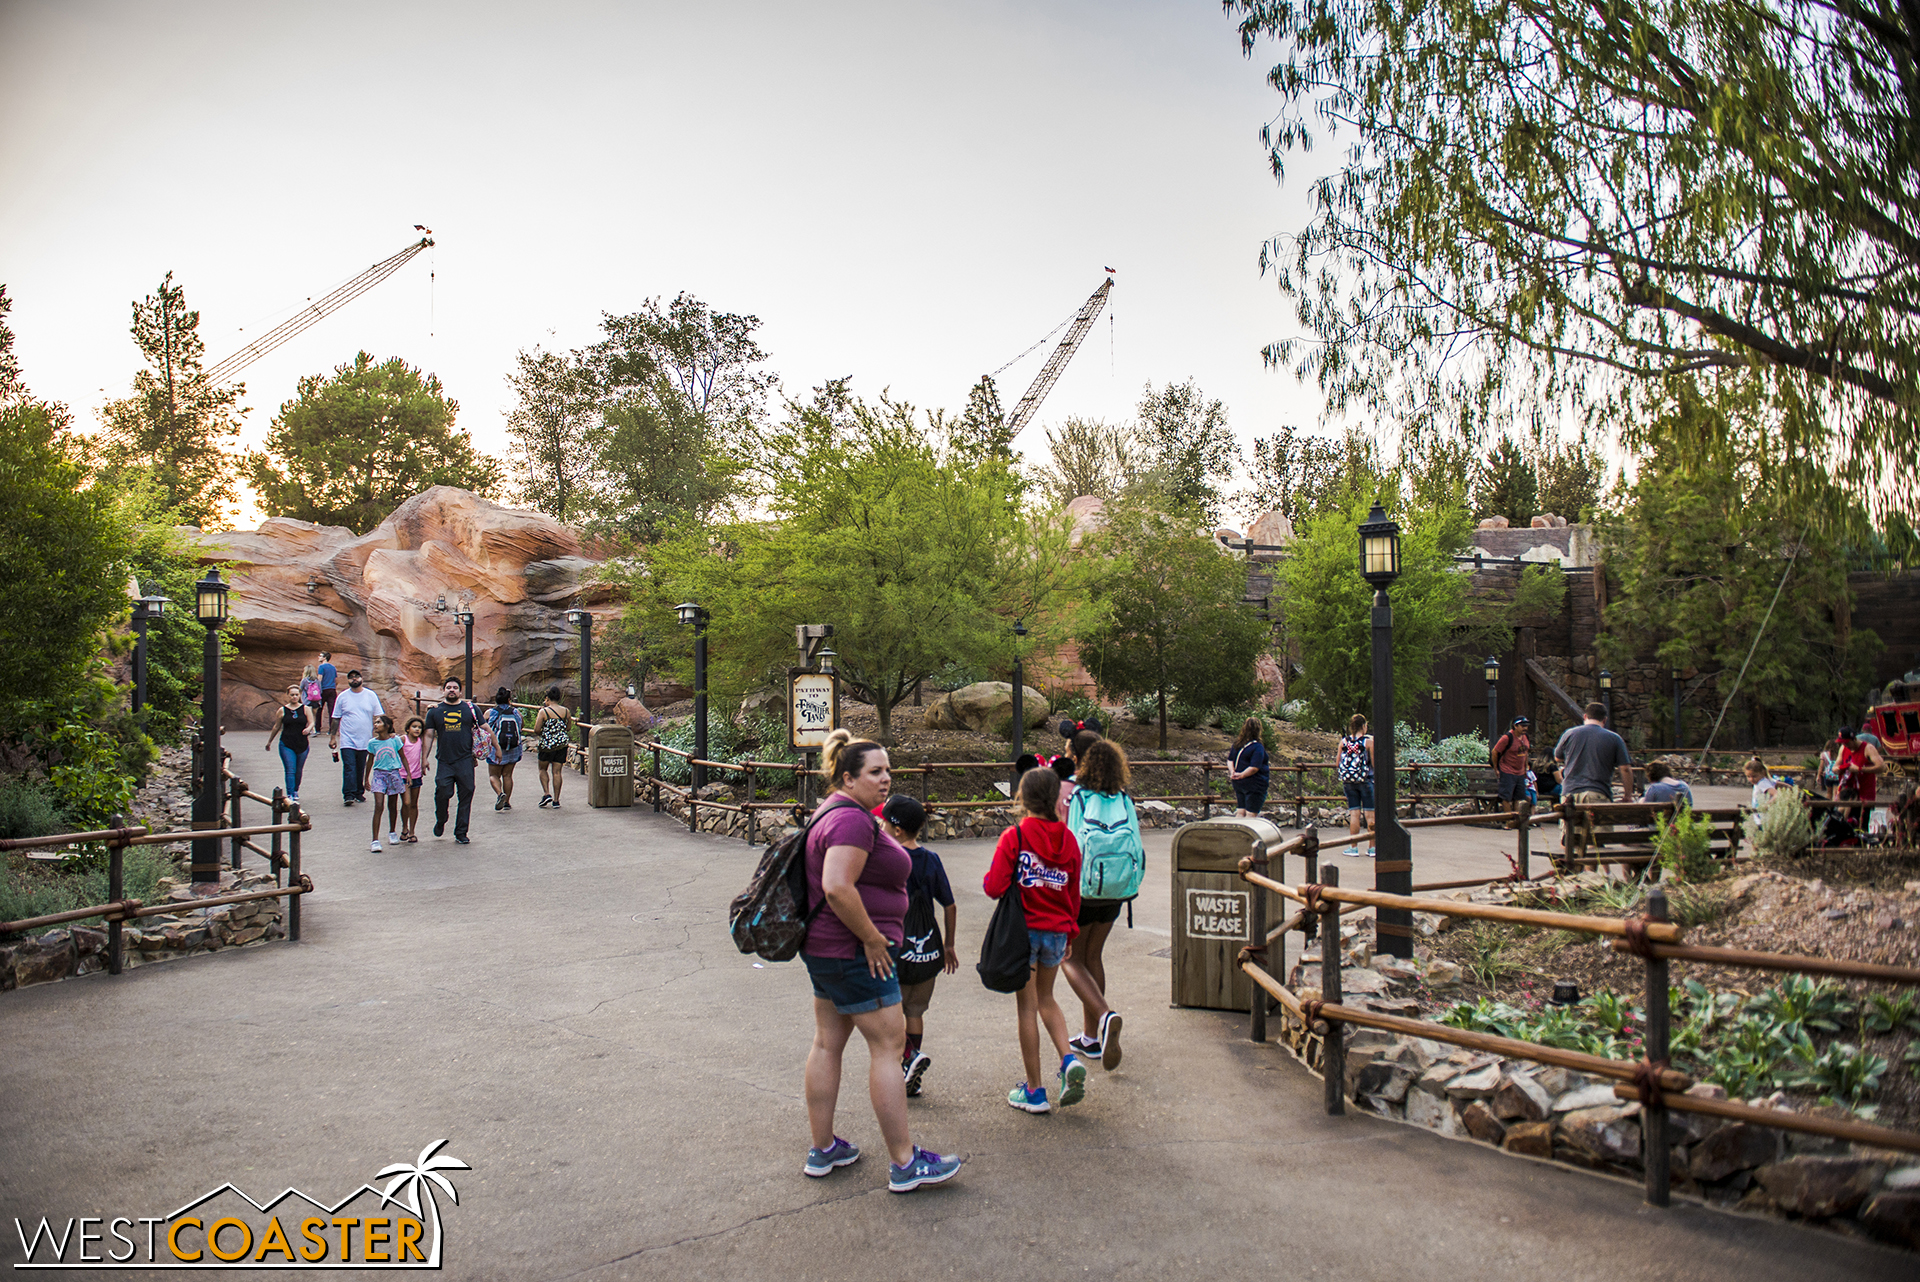 Lets head over to the former Big Thunder Ranch trail.